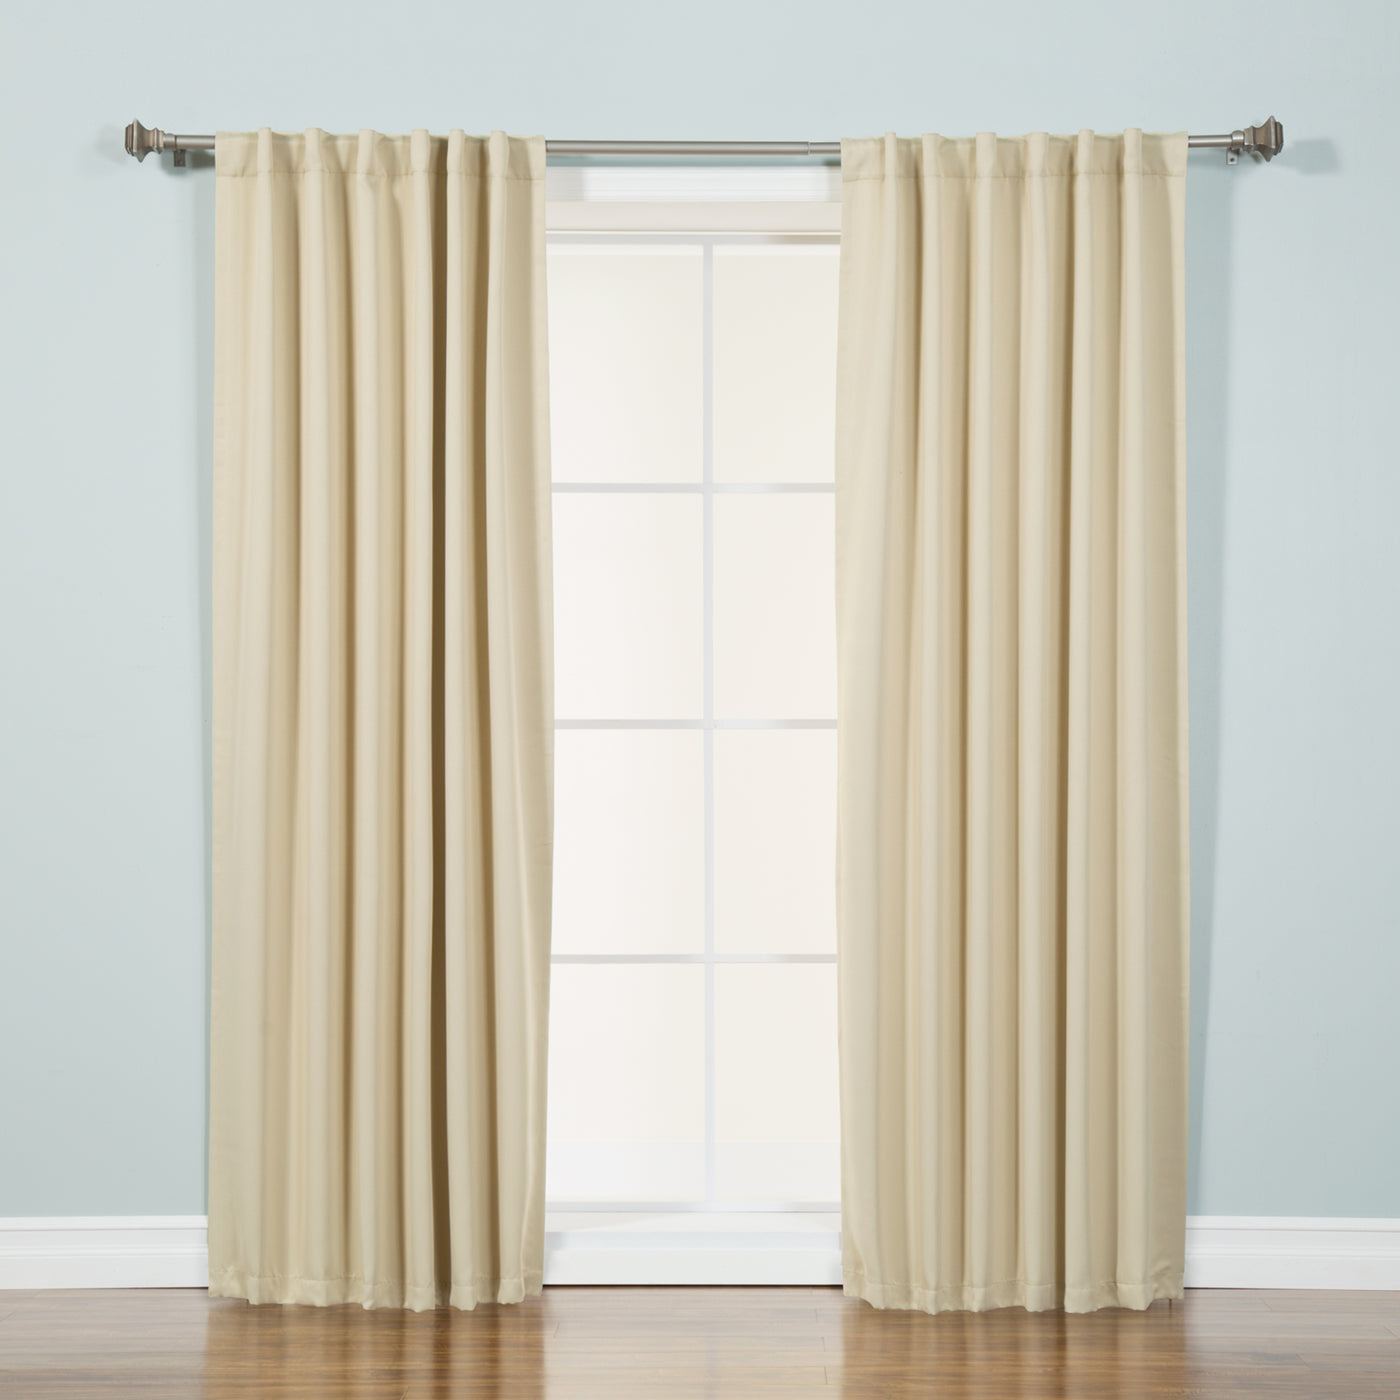 Basic Blackout Curtain